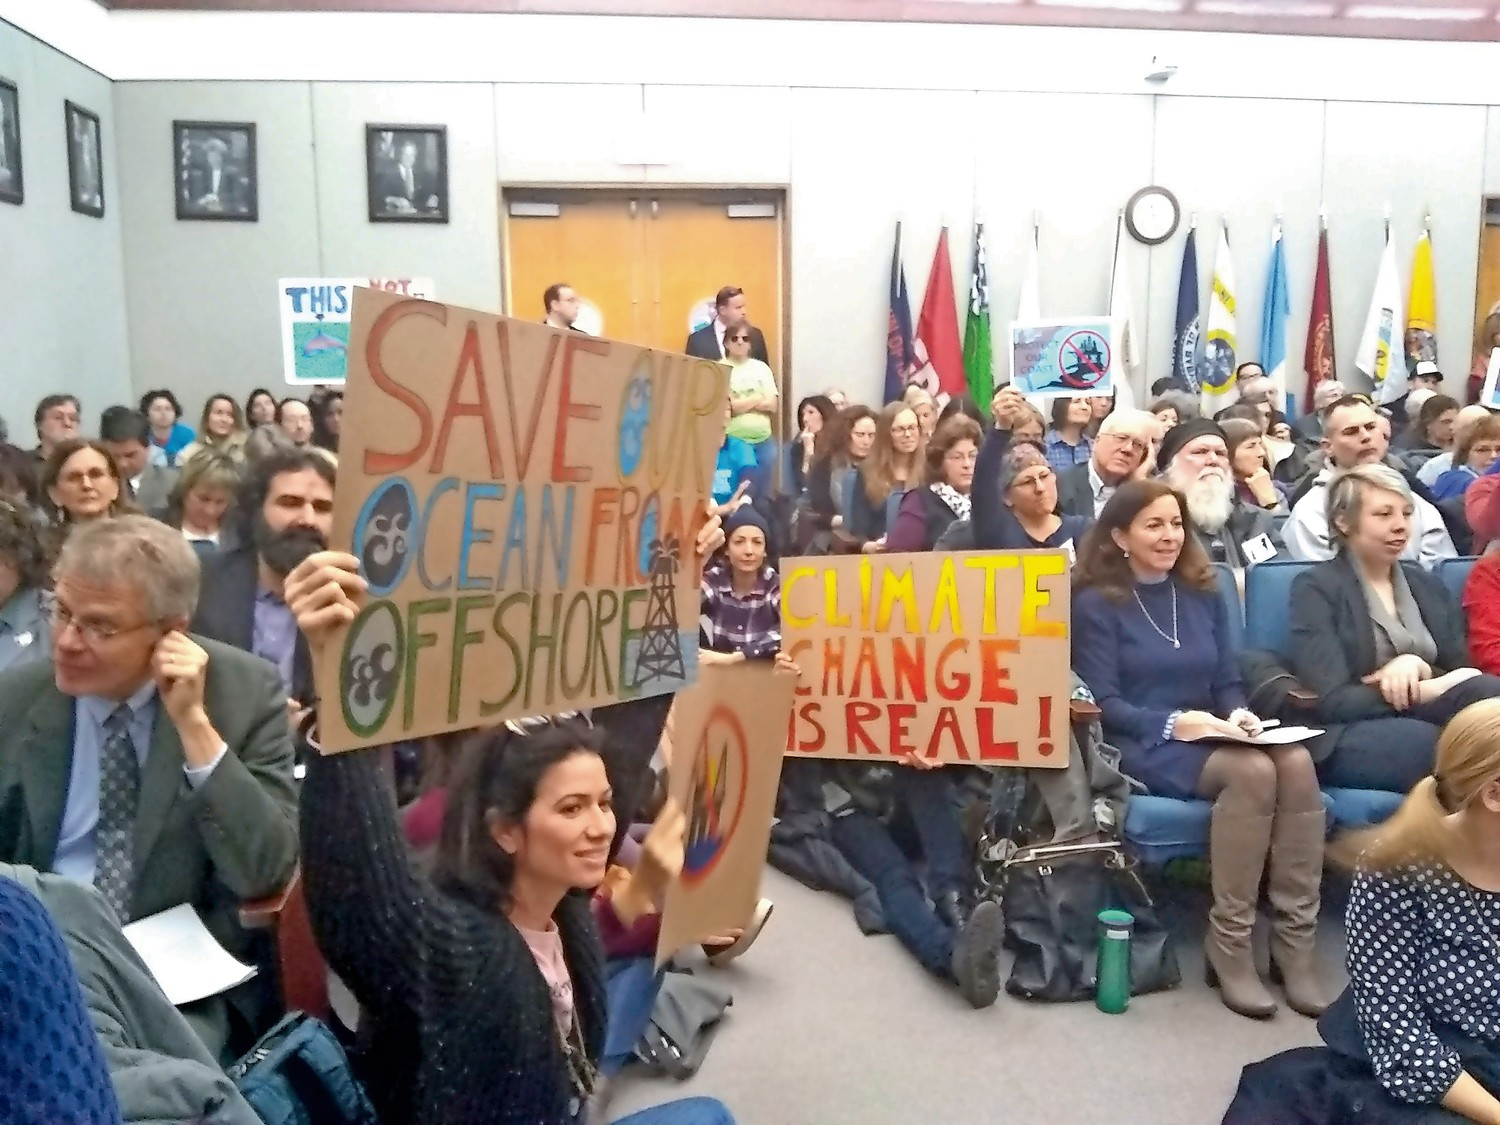 Elected officials, environmentalists and others gathered at the Suffolk County Legislature on Feb. 14 to speak against offshore drilling.